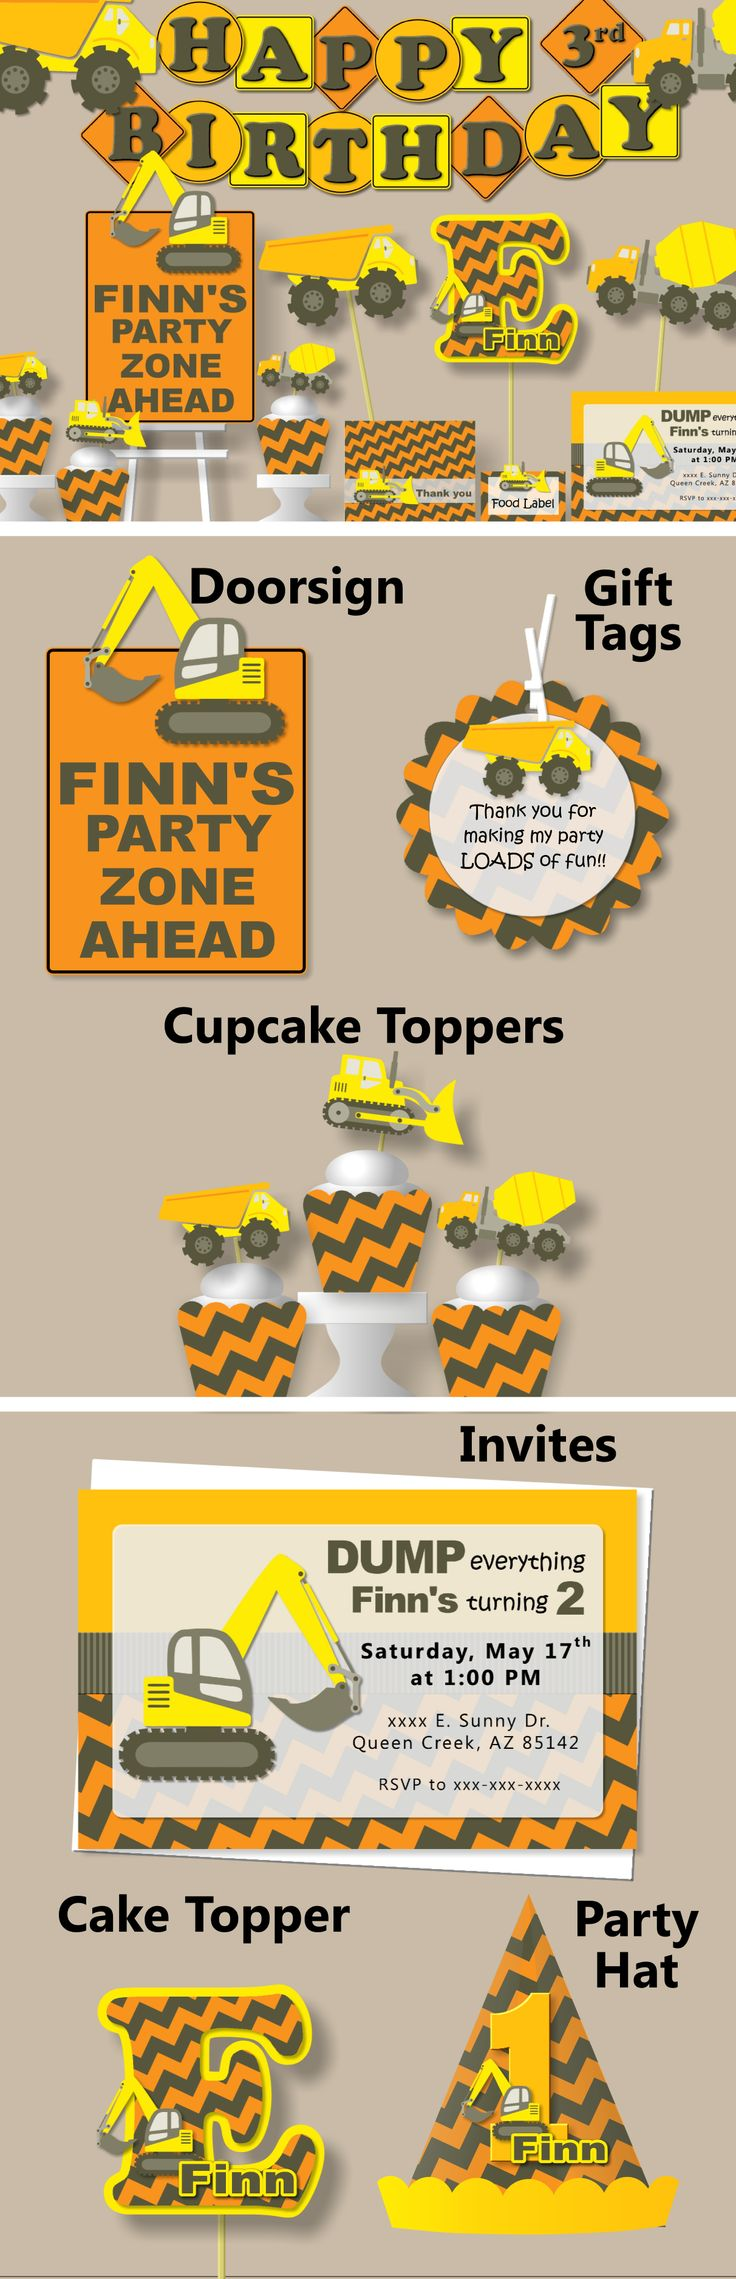 Construction Birthday Party Theme - Banner, Invitations, Cupcake Toppers, Cake Topper, Favor Tags #bcpaperdesigns